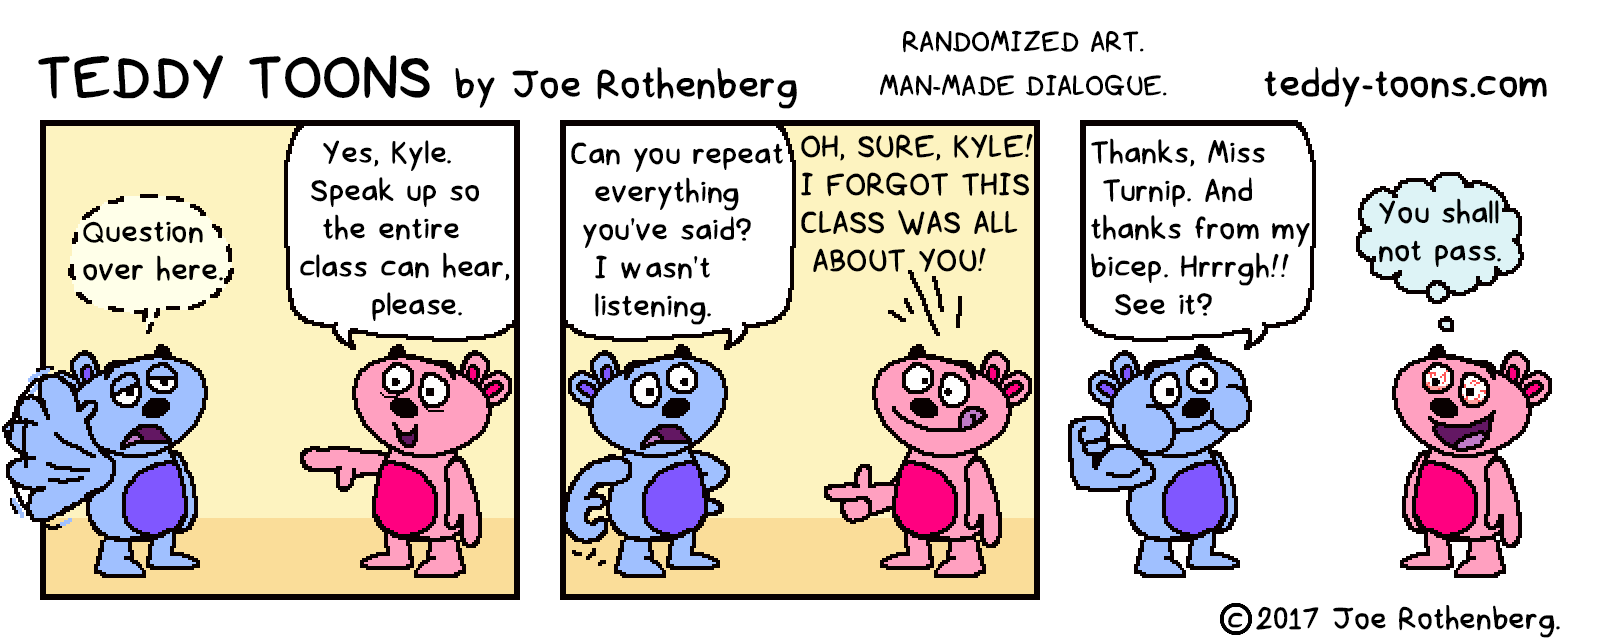 02-08-17.png